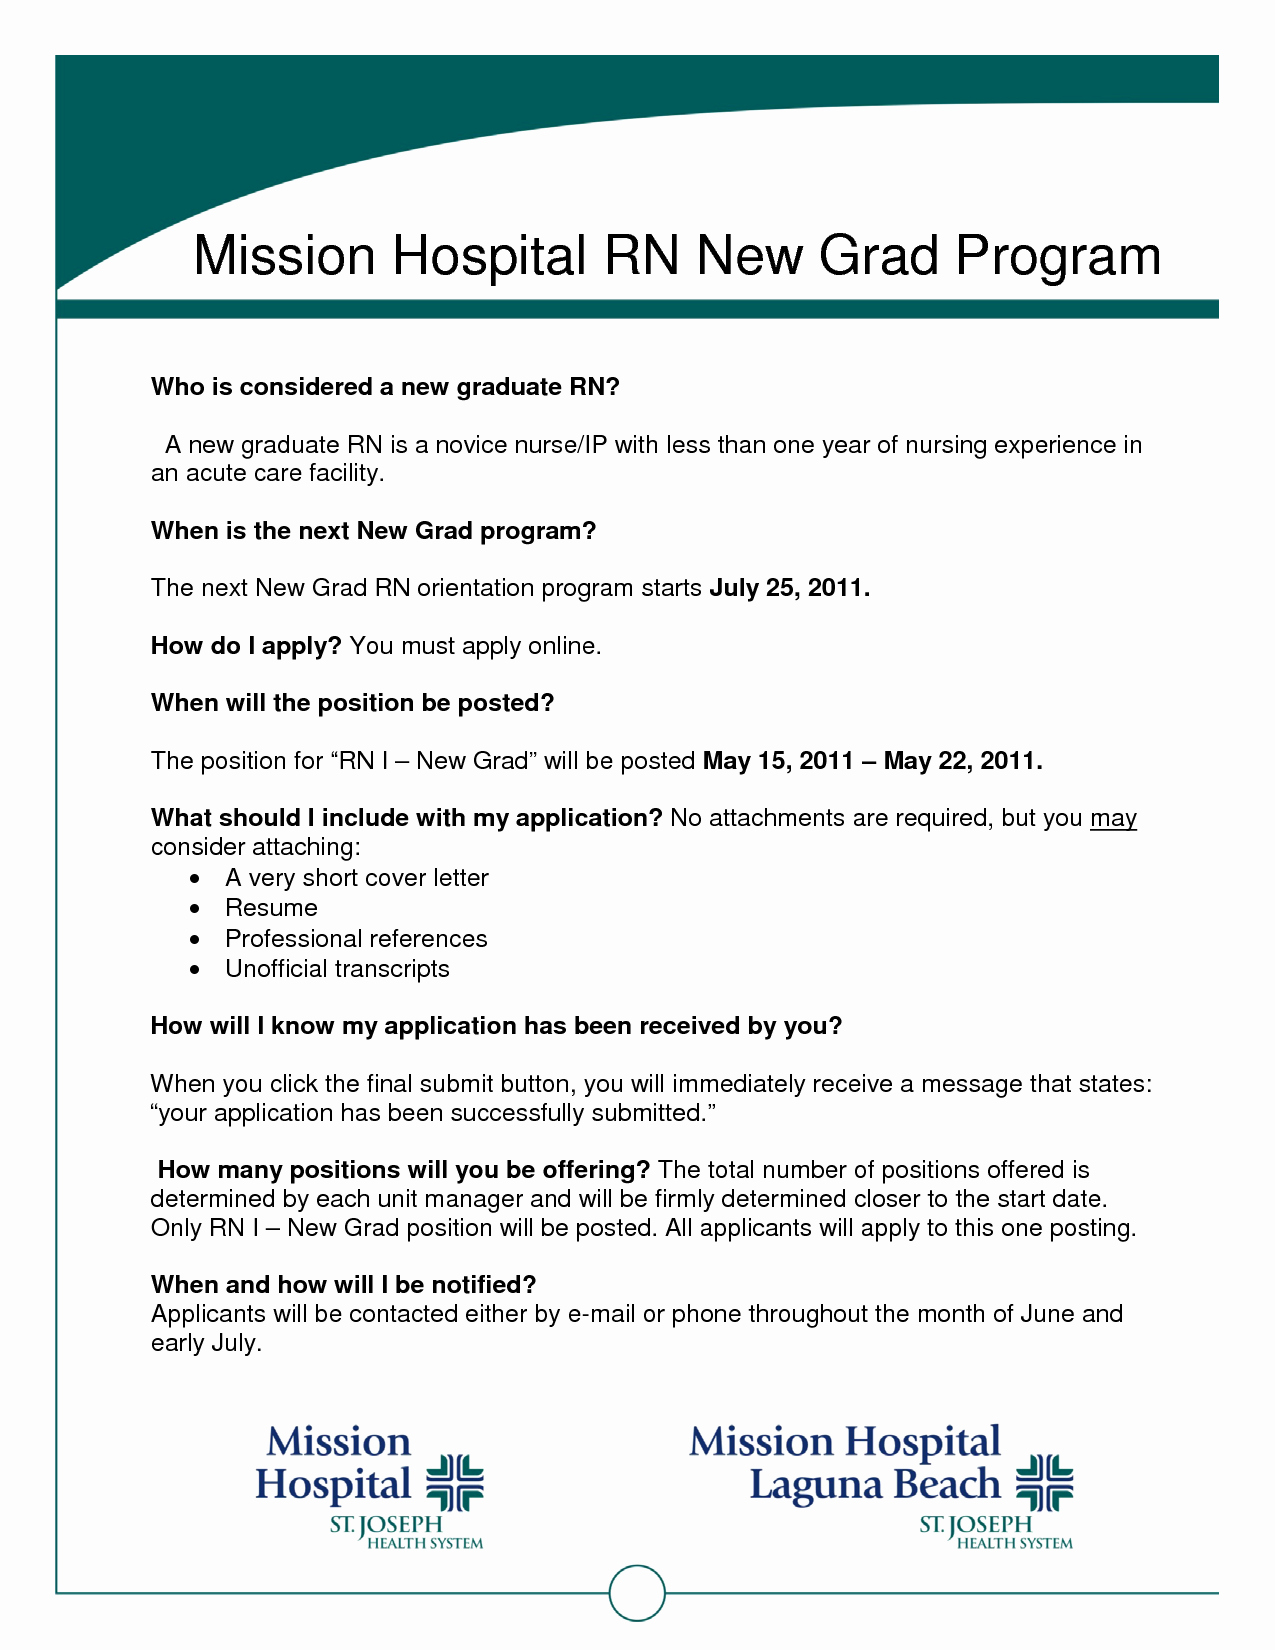 Graduate Nurse Resume Template Inspirational Graduate Nurse Resume Template Resume Ideas